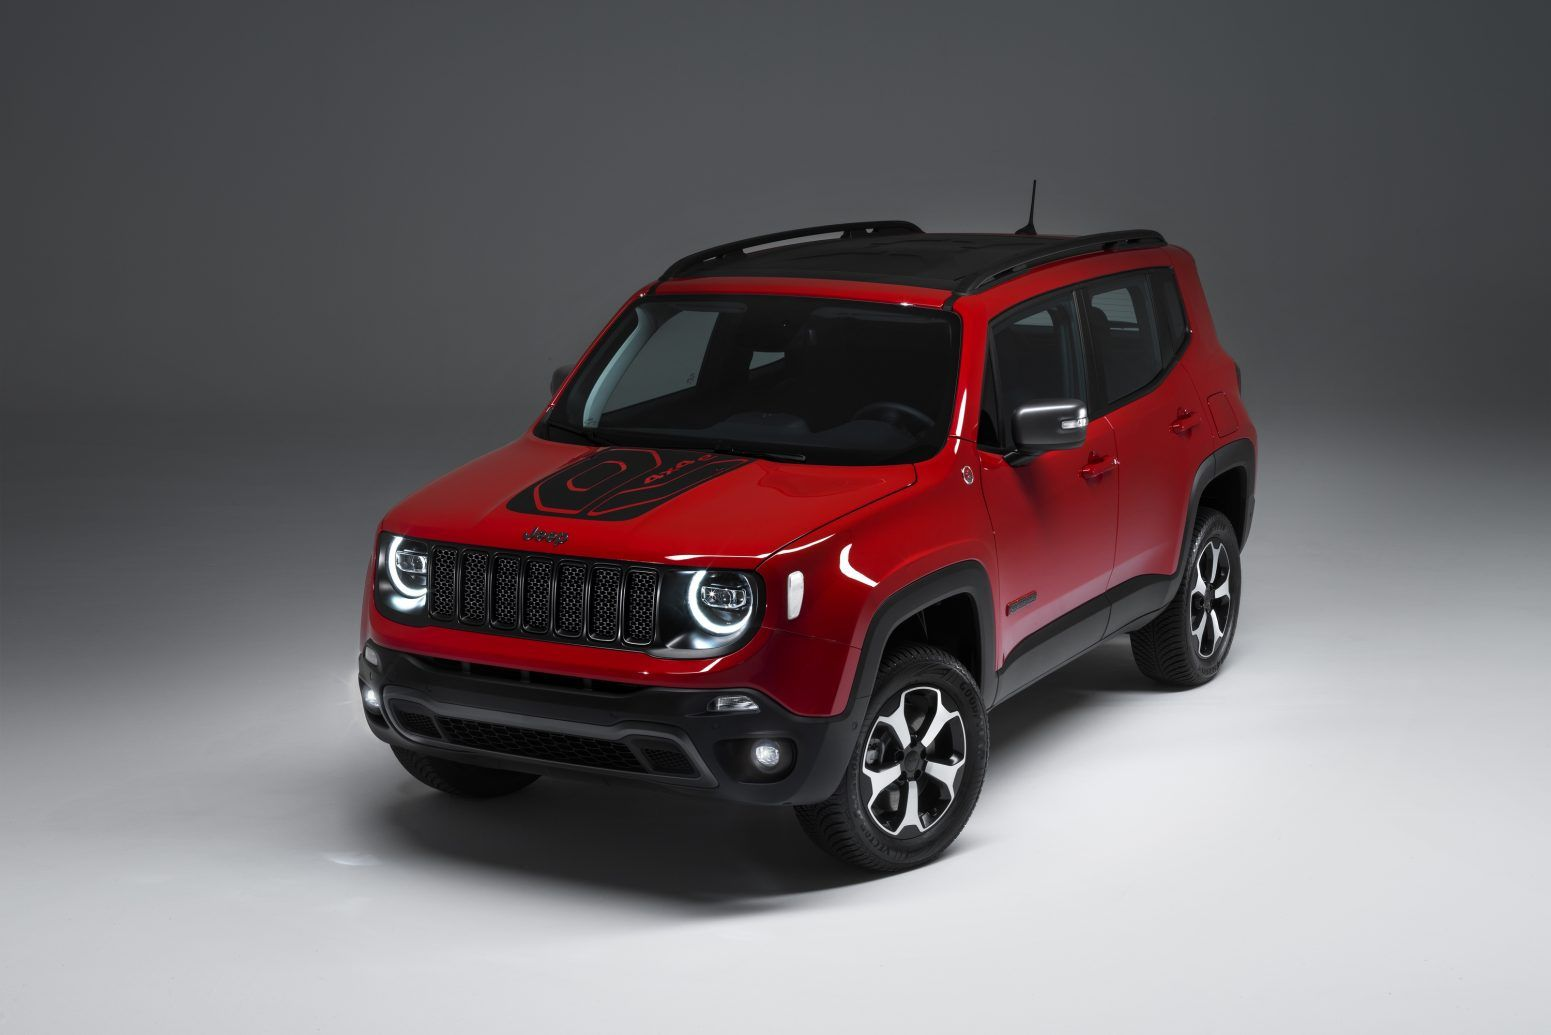 2020 Jeep Renegade Hybrid Review Cost Redesign Release Date Photos Com Imagens Jeep Jeep Renegade Carrosantigos